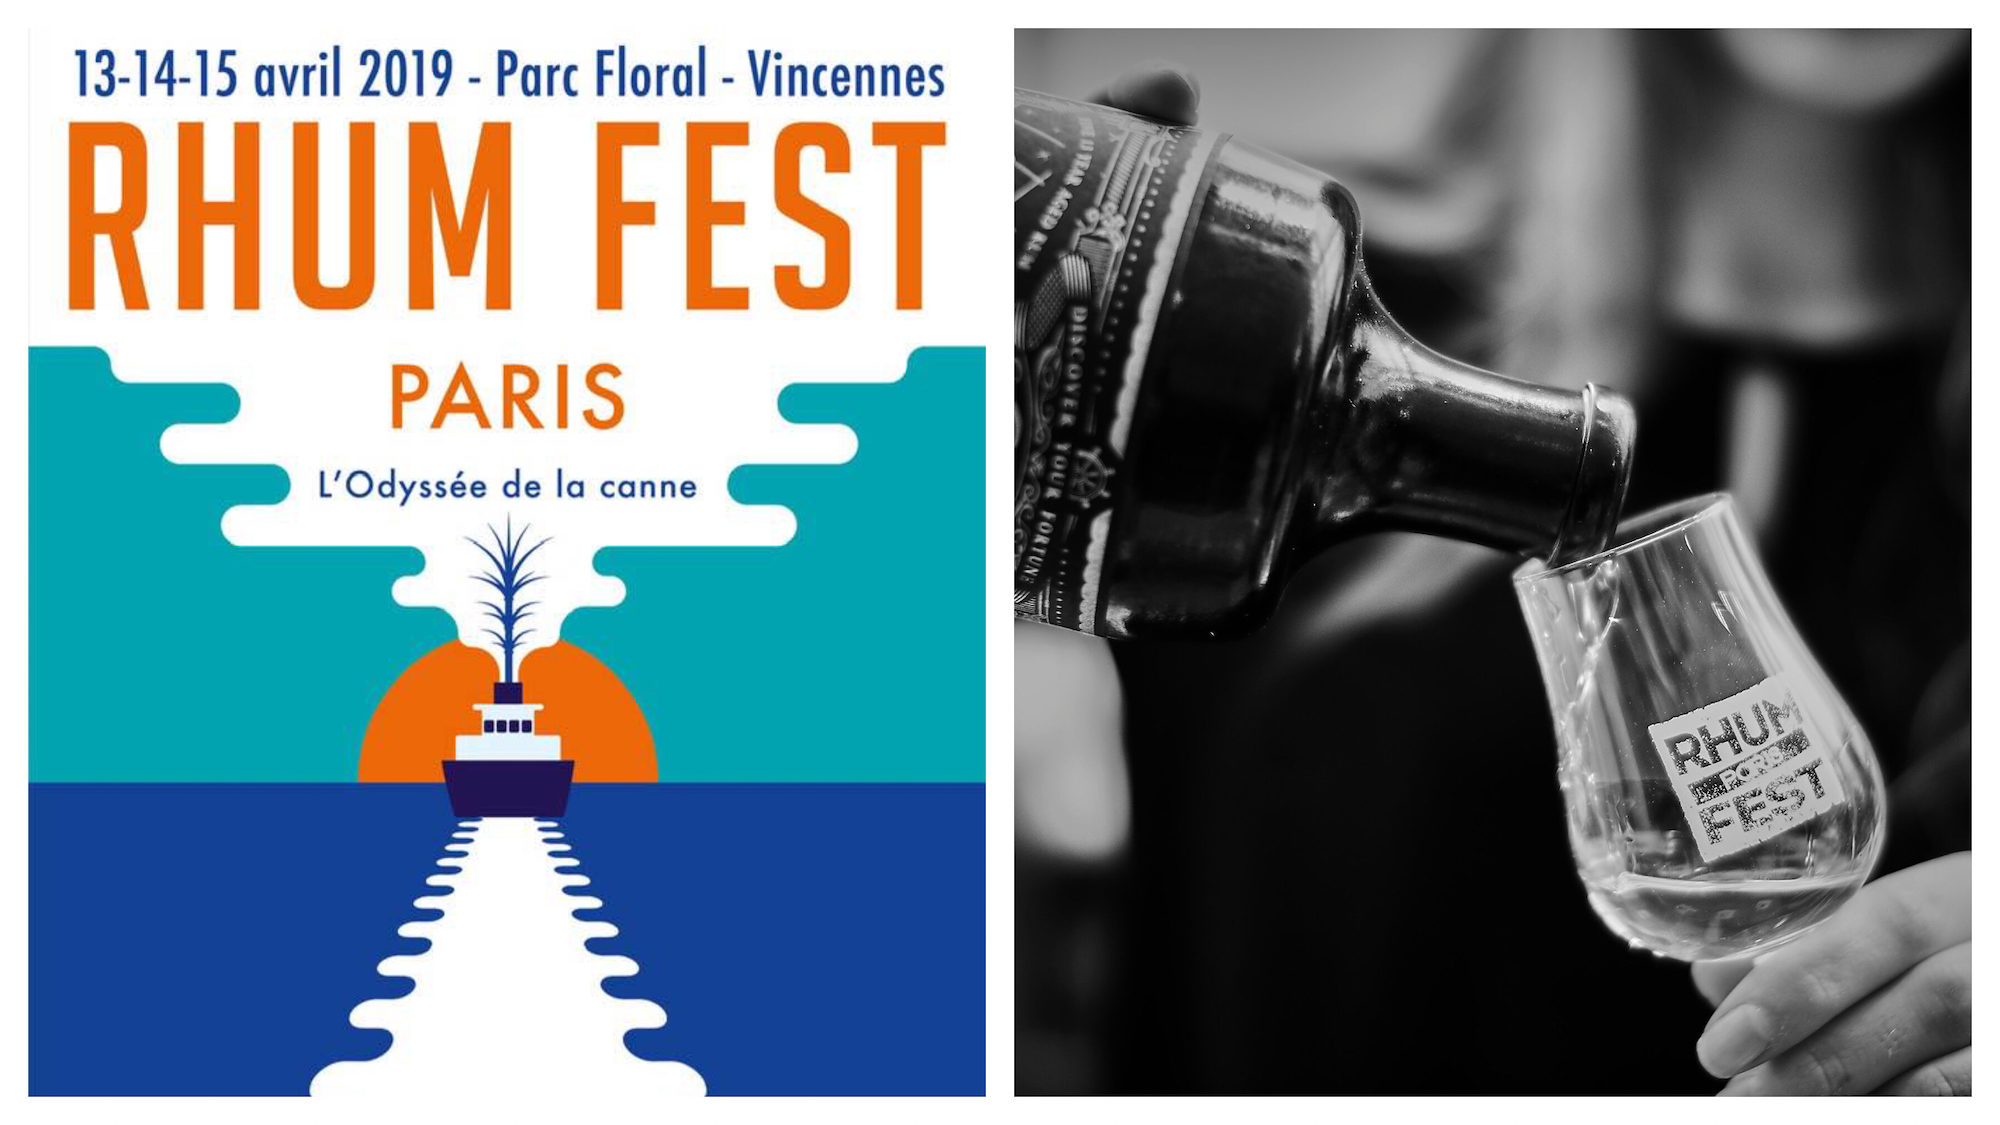 A poster for the Paris rum festival in April with a block painting of a boat out to see (left). Someone pouring rum into a glass at the Paris rum festival (right).